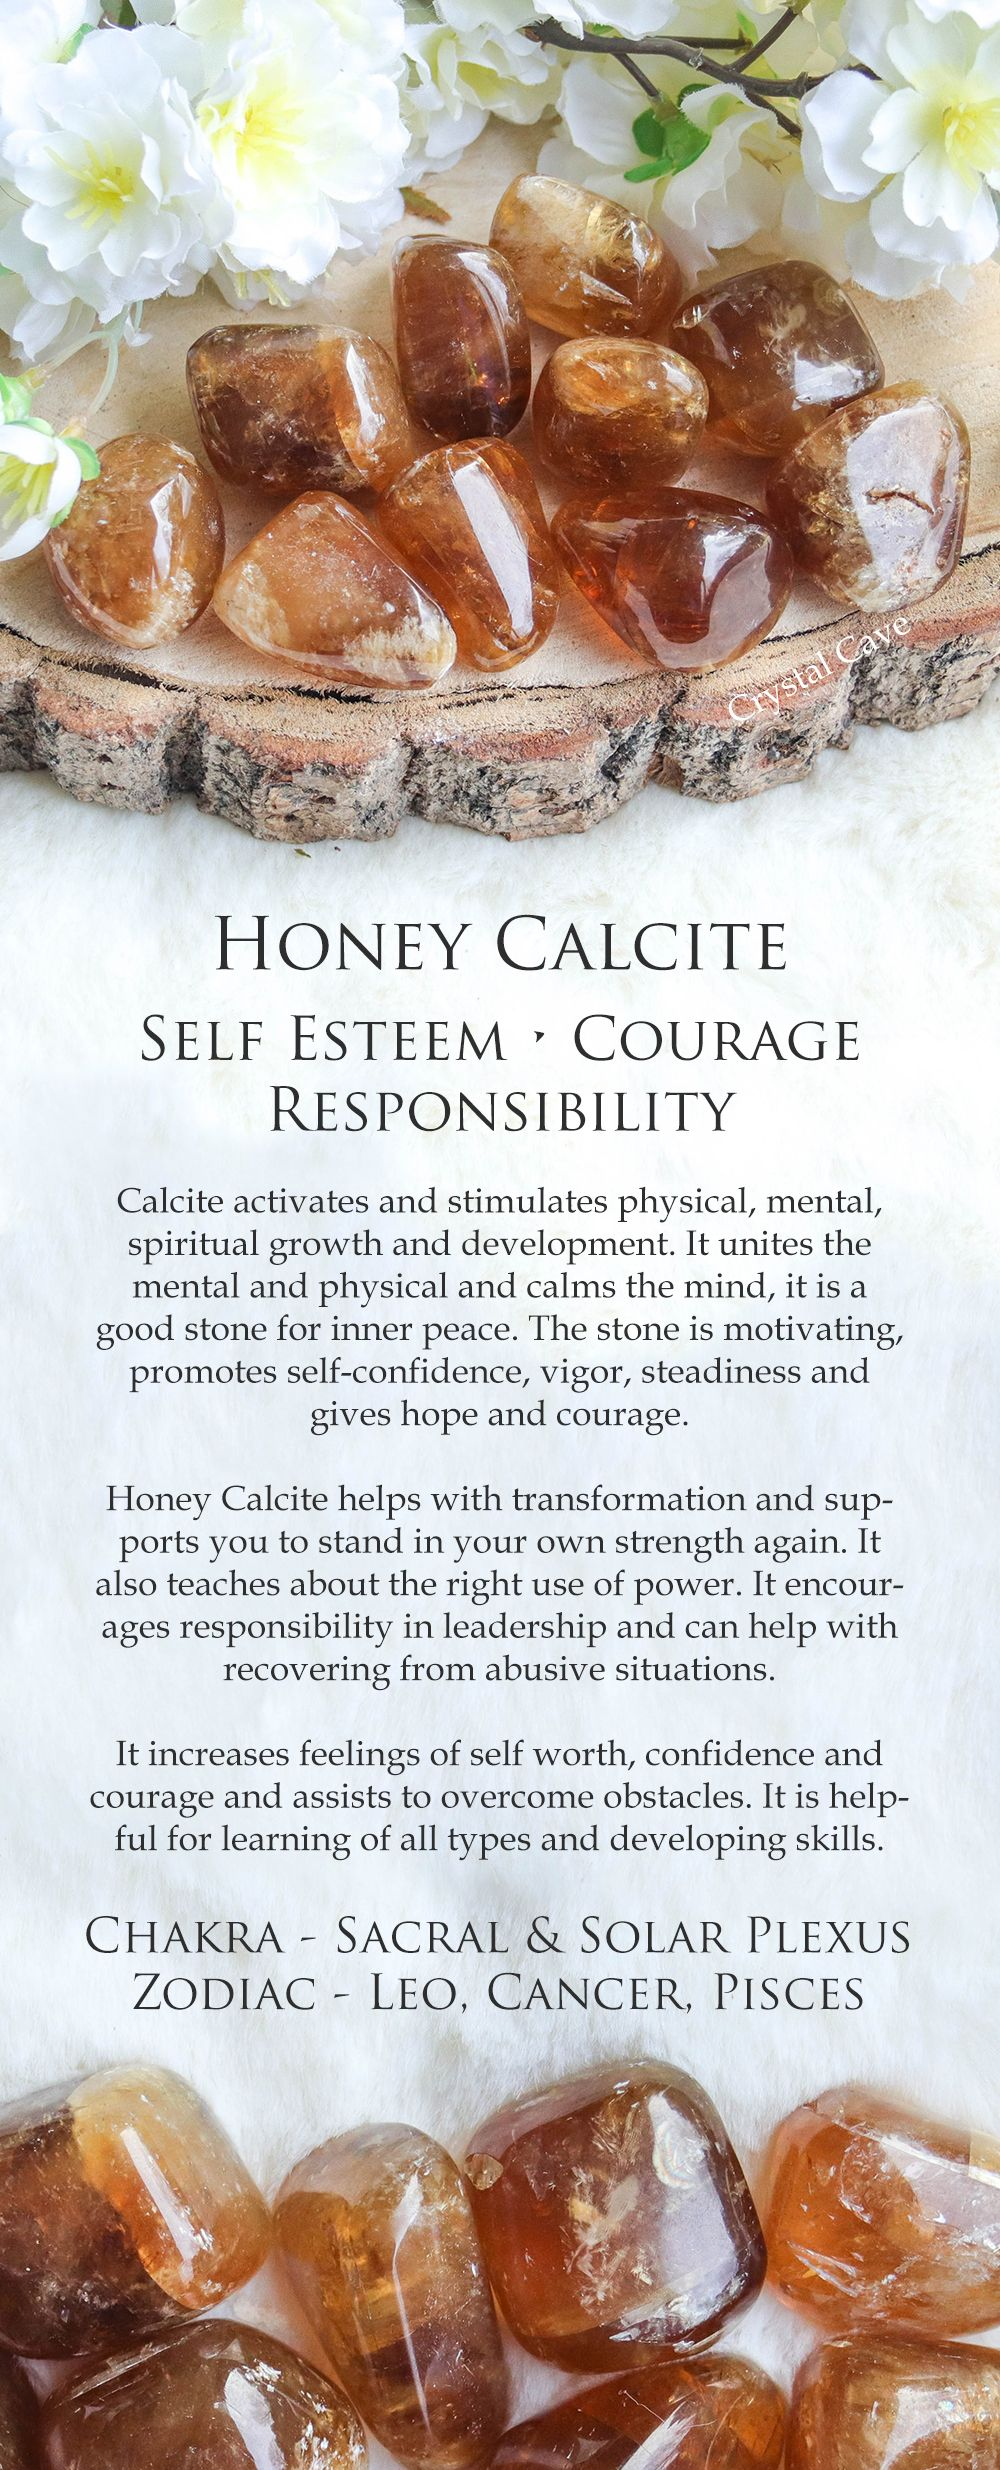 Honey Calcite Tumbled Stone / Honey Calcite Cuddle Stone / Honey Calcite Gemstone / Crystal For Self Esteem / Gemstone for Courage Stones #crystalhealing